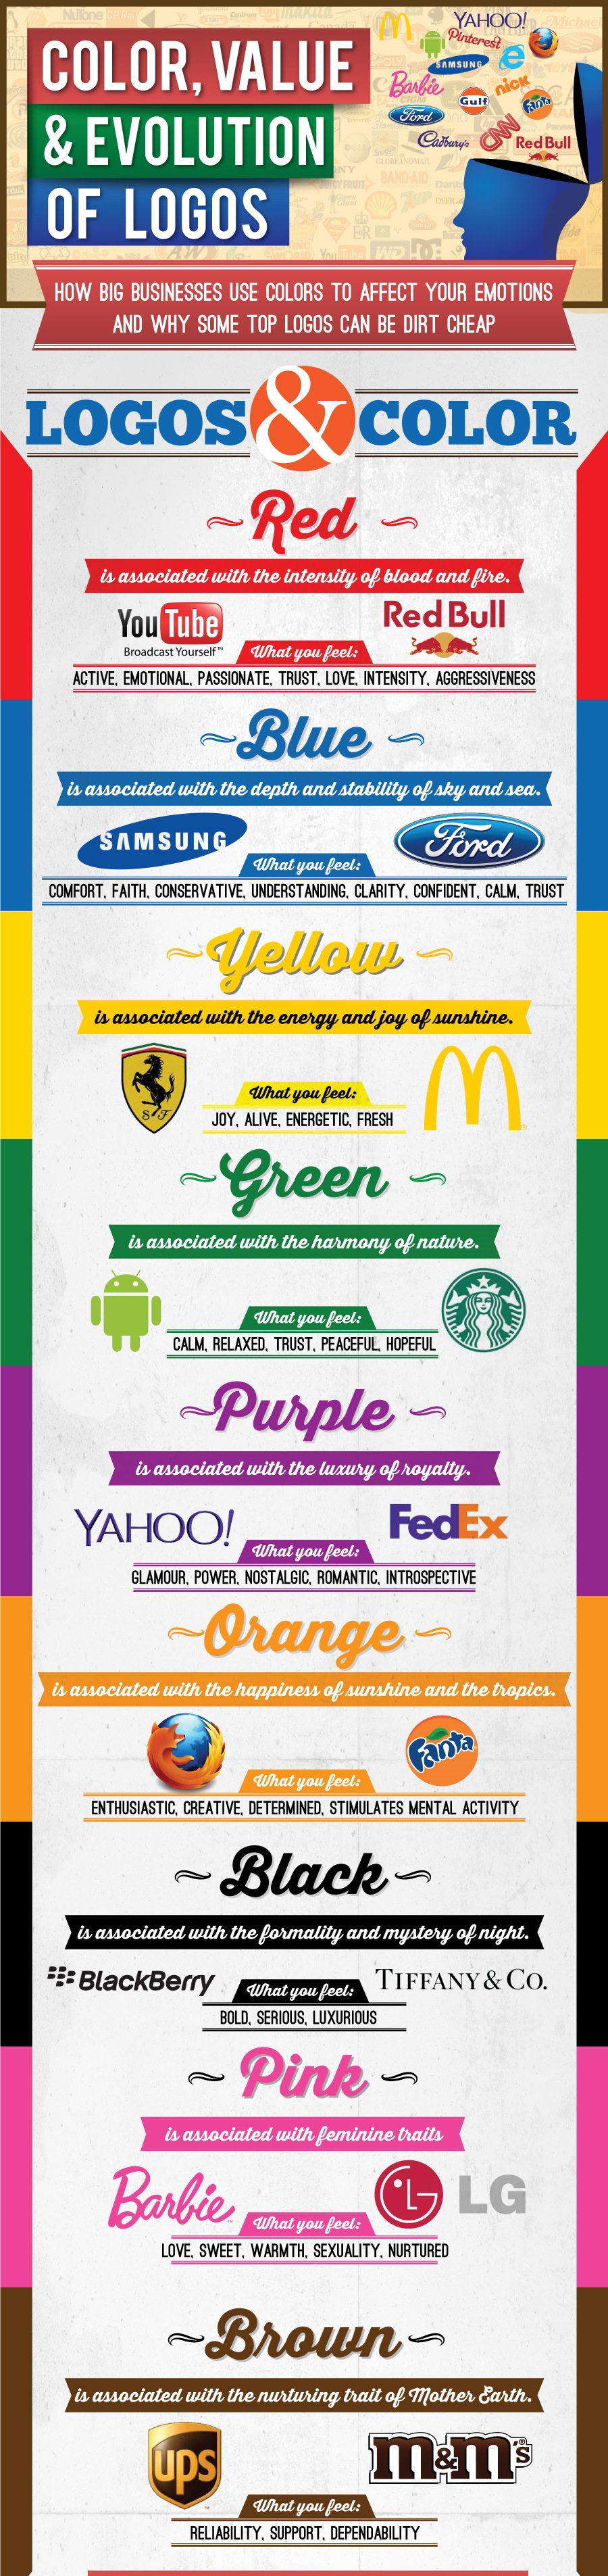 logo-infographic_edited